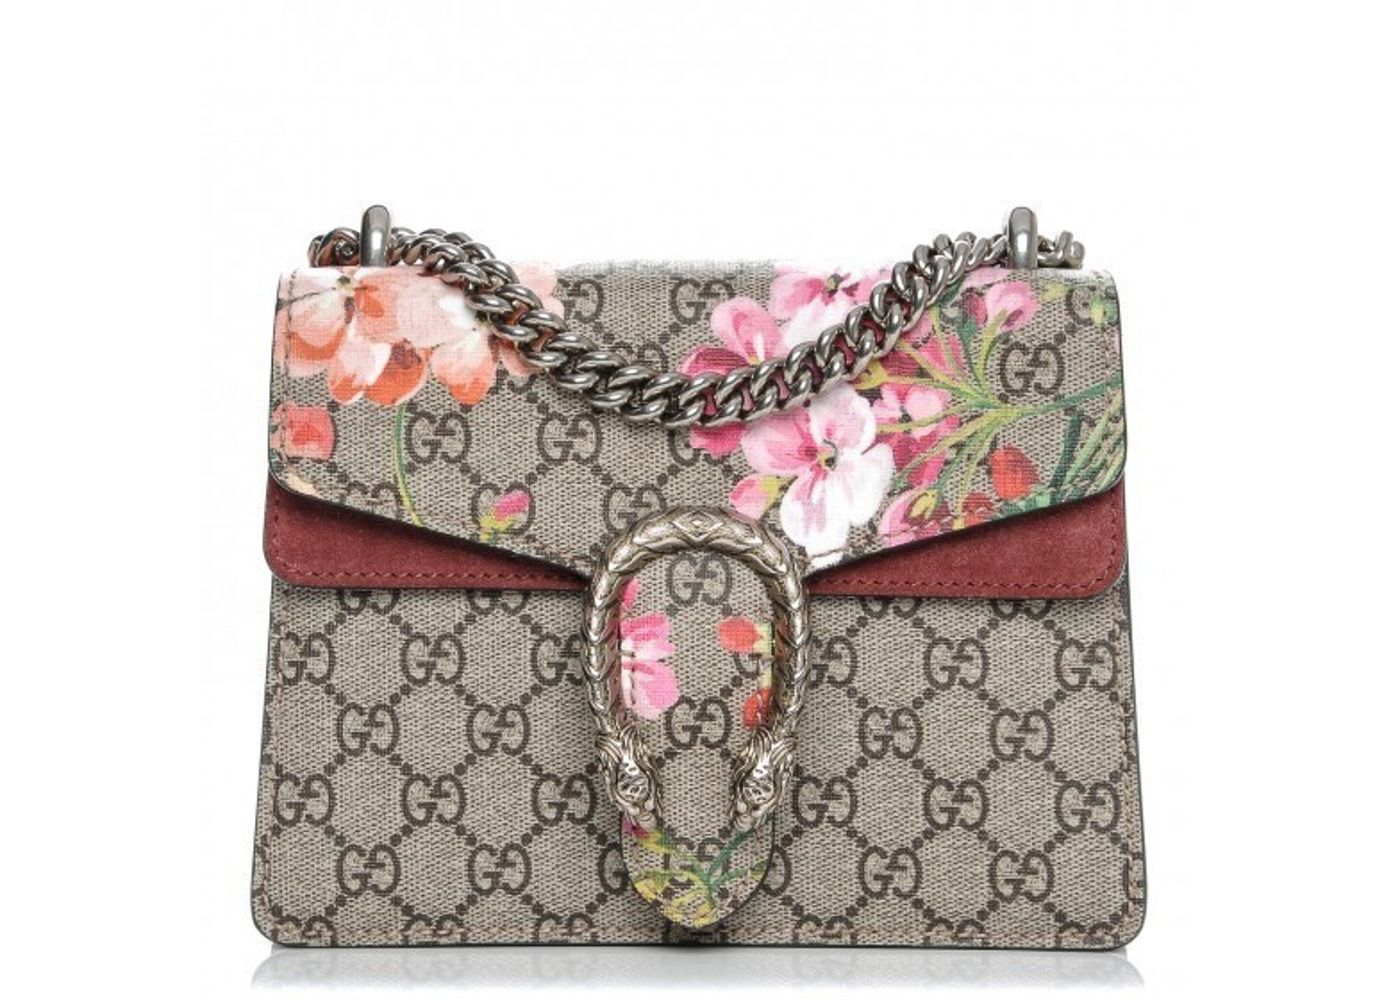 f6612eca Check out the Gucci Dionysus Blooms Shoulder Monogram GG Supreme Floral  Print Mini Brown/Antique Rose available on StockX